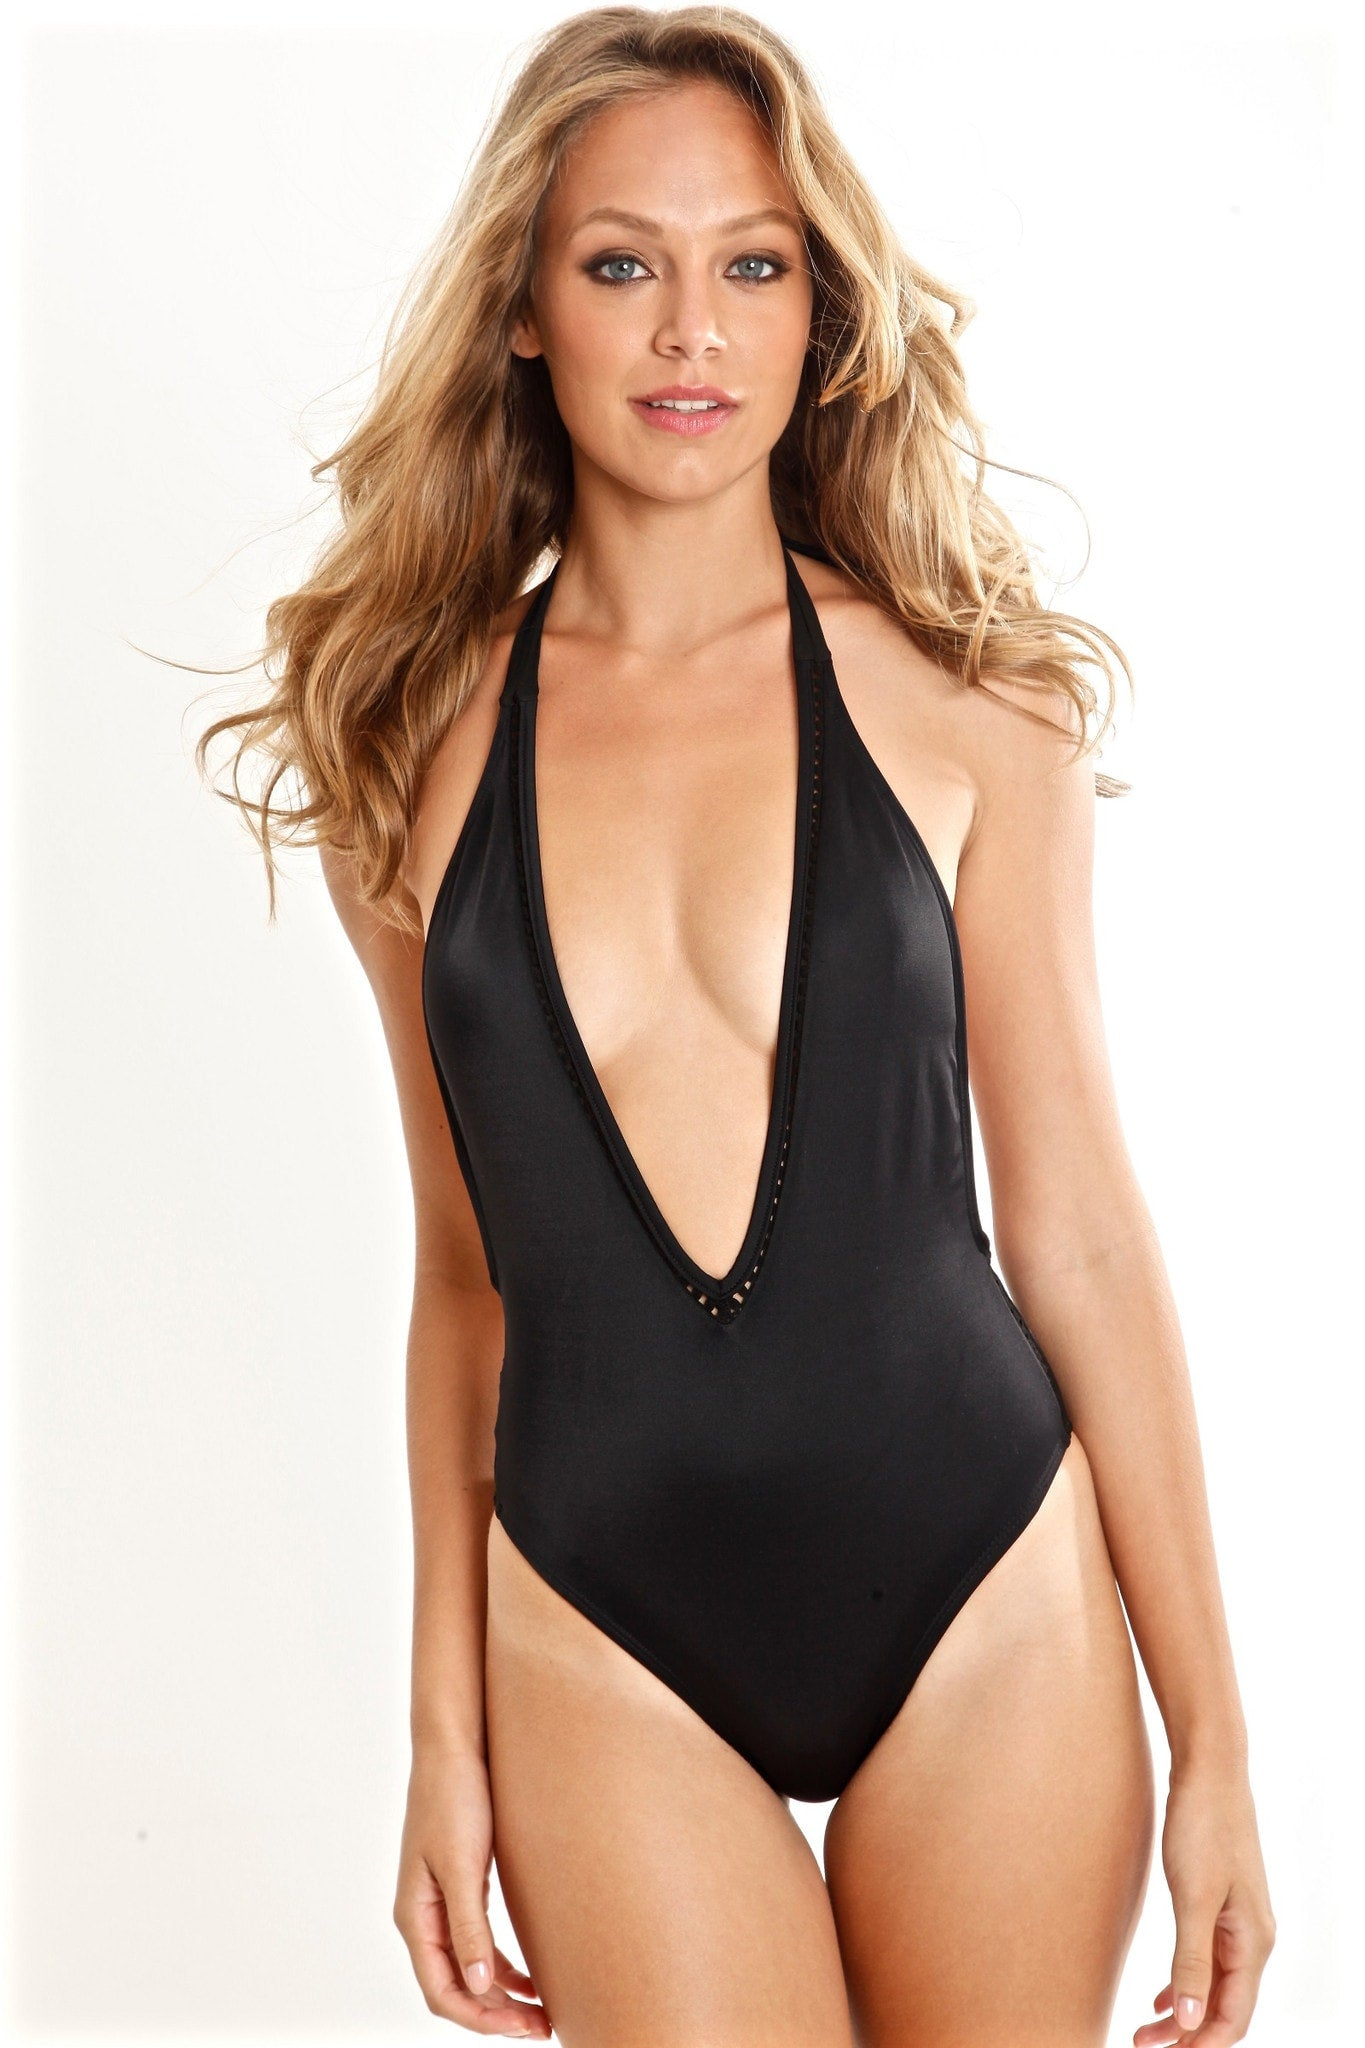 FREE Shipping & FREE Returns on One Piece Swimsuits and Bathing Suits. Shop now! Pick Up in Store Available.